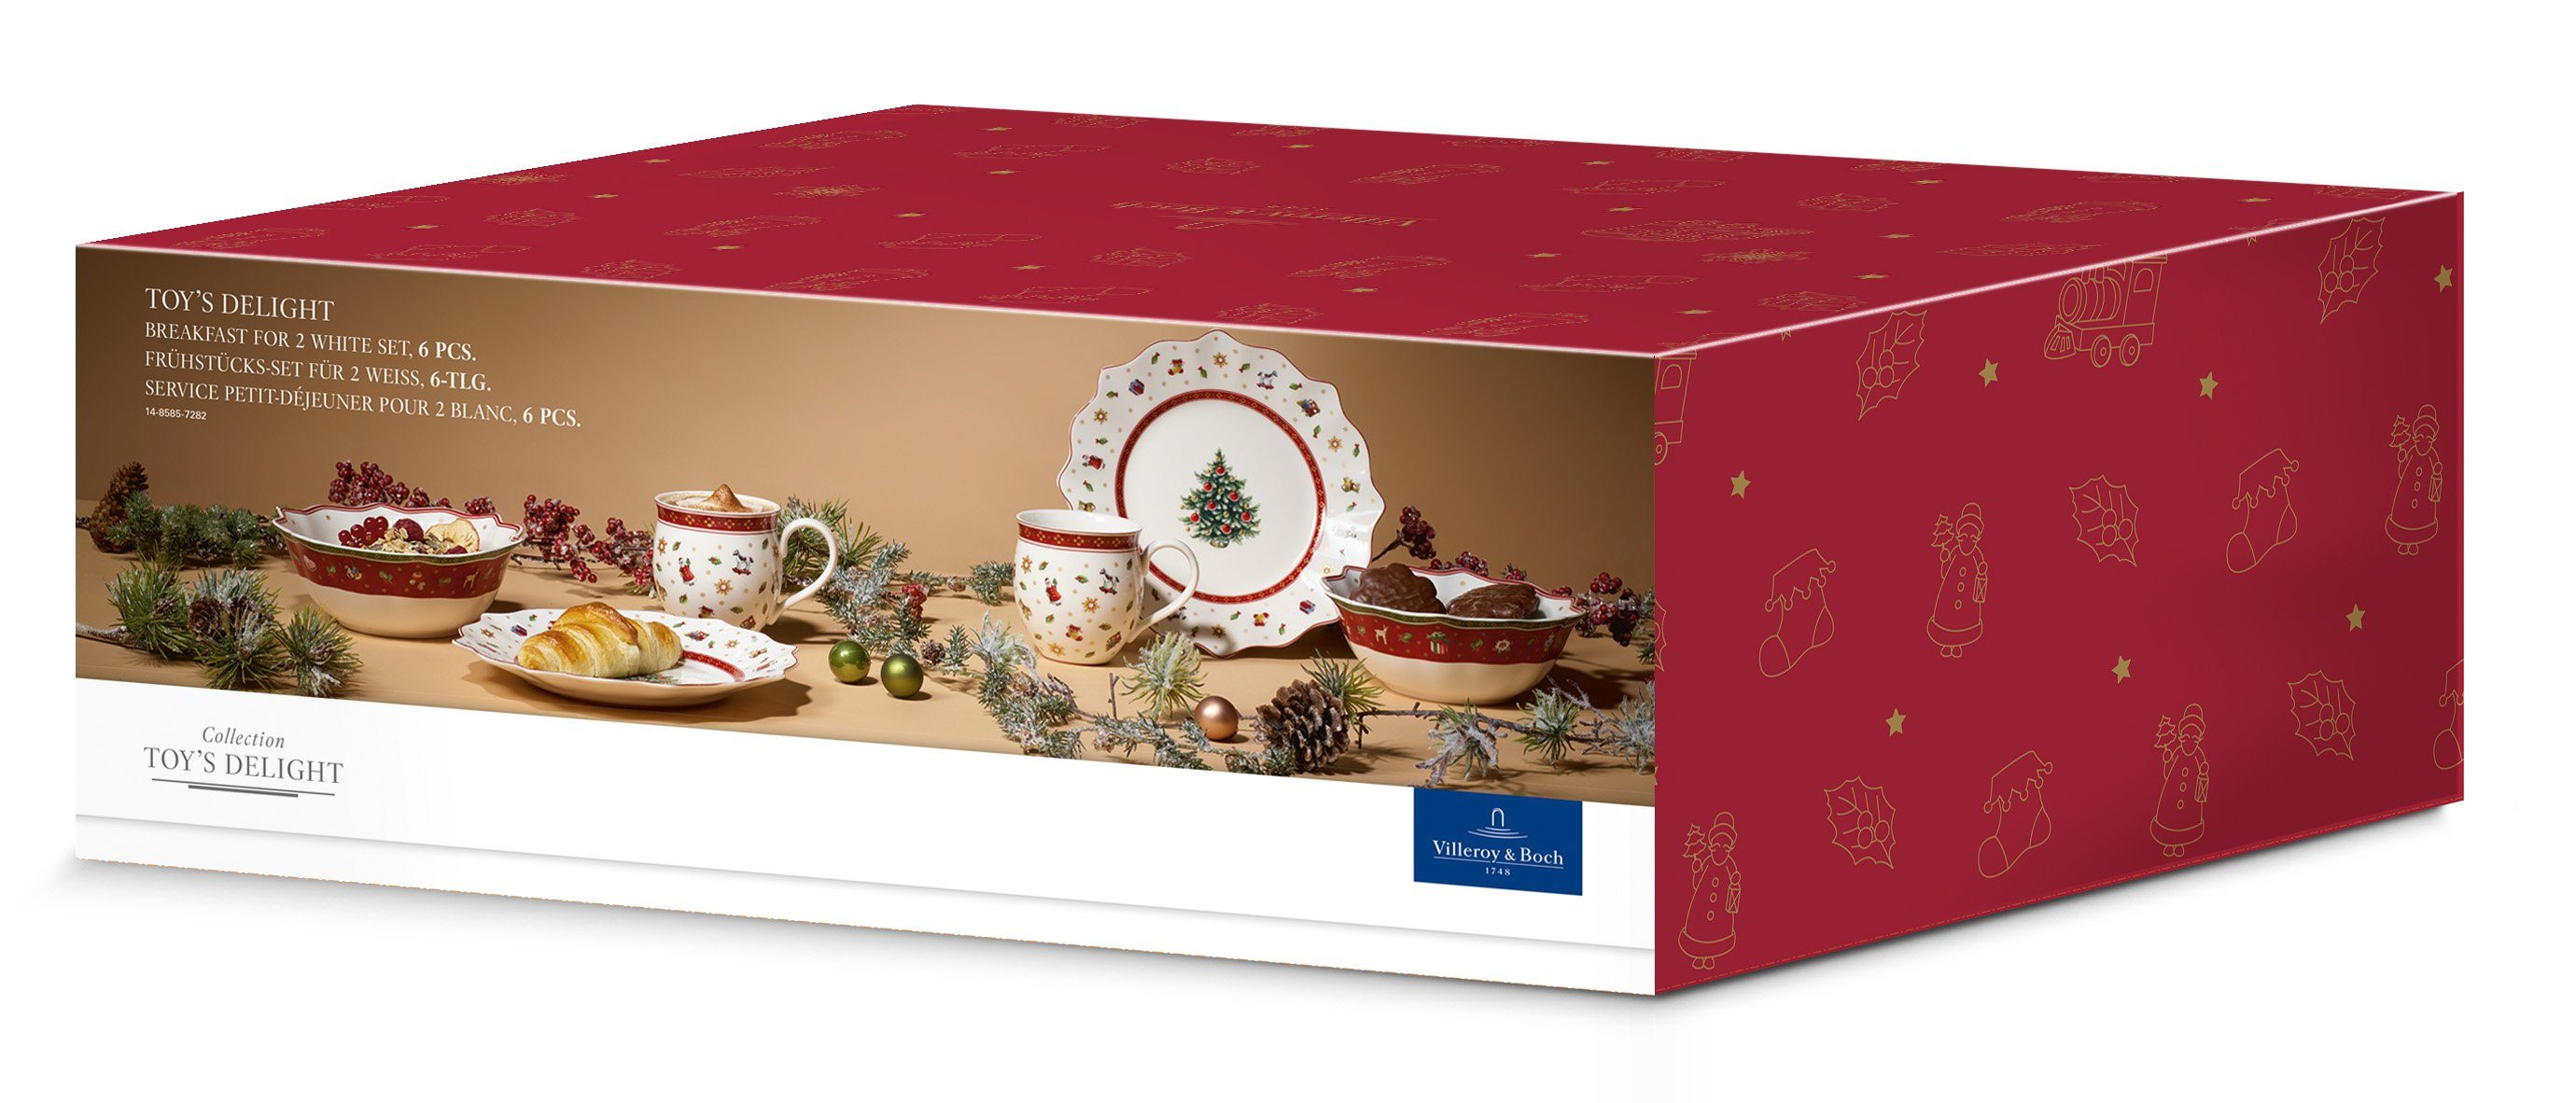 Villeroy & Boch Breakfast for Two, weiß 6-teilig »Toy's Delight«